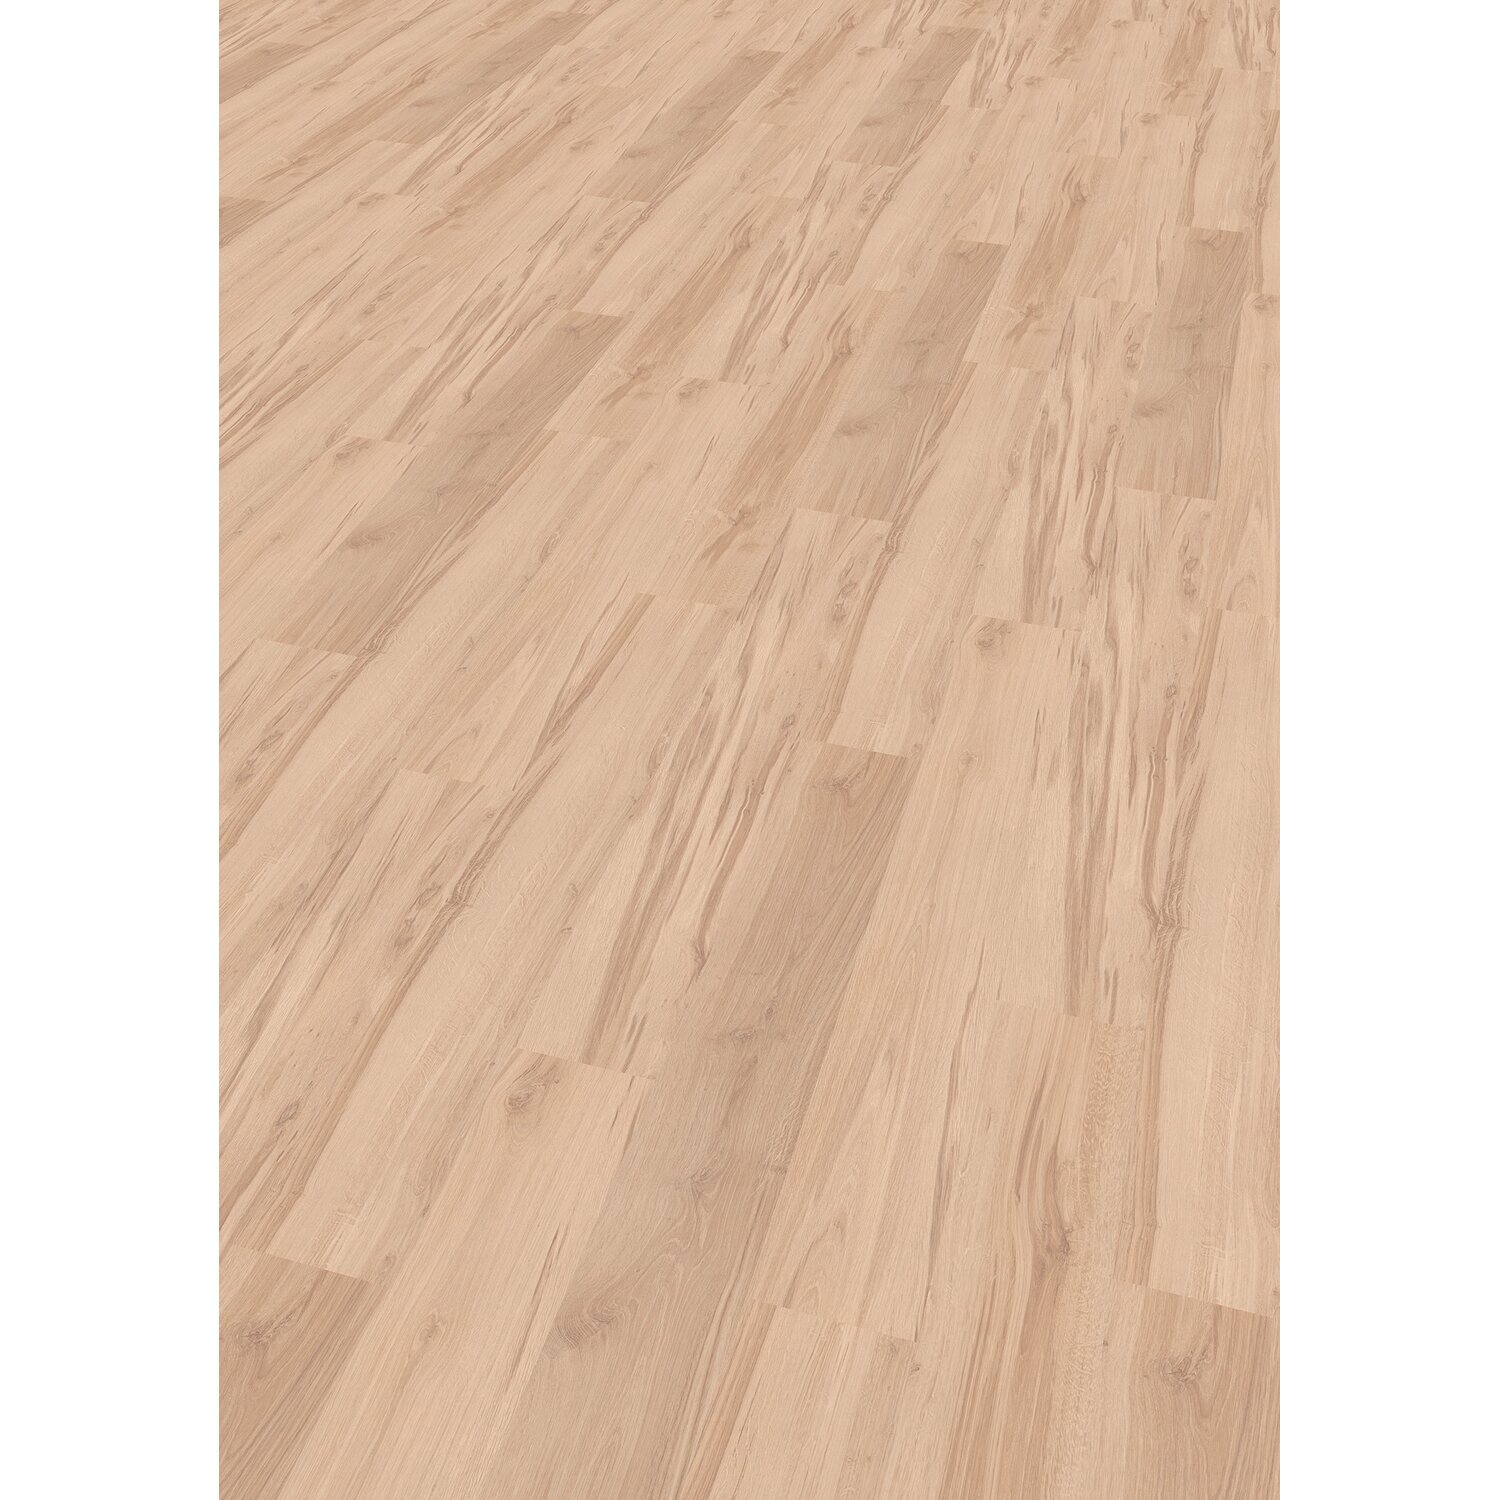 Obi laminatboden comfort celtic oak altholzstruktur kaufen for Obi raumplaner